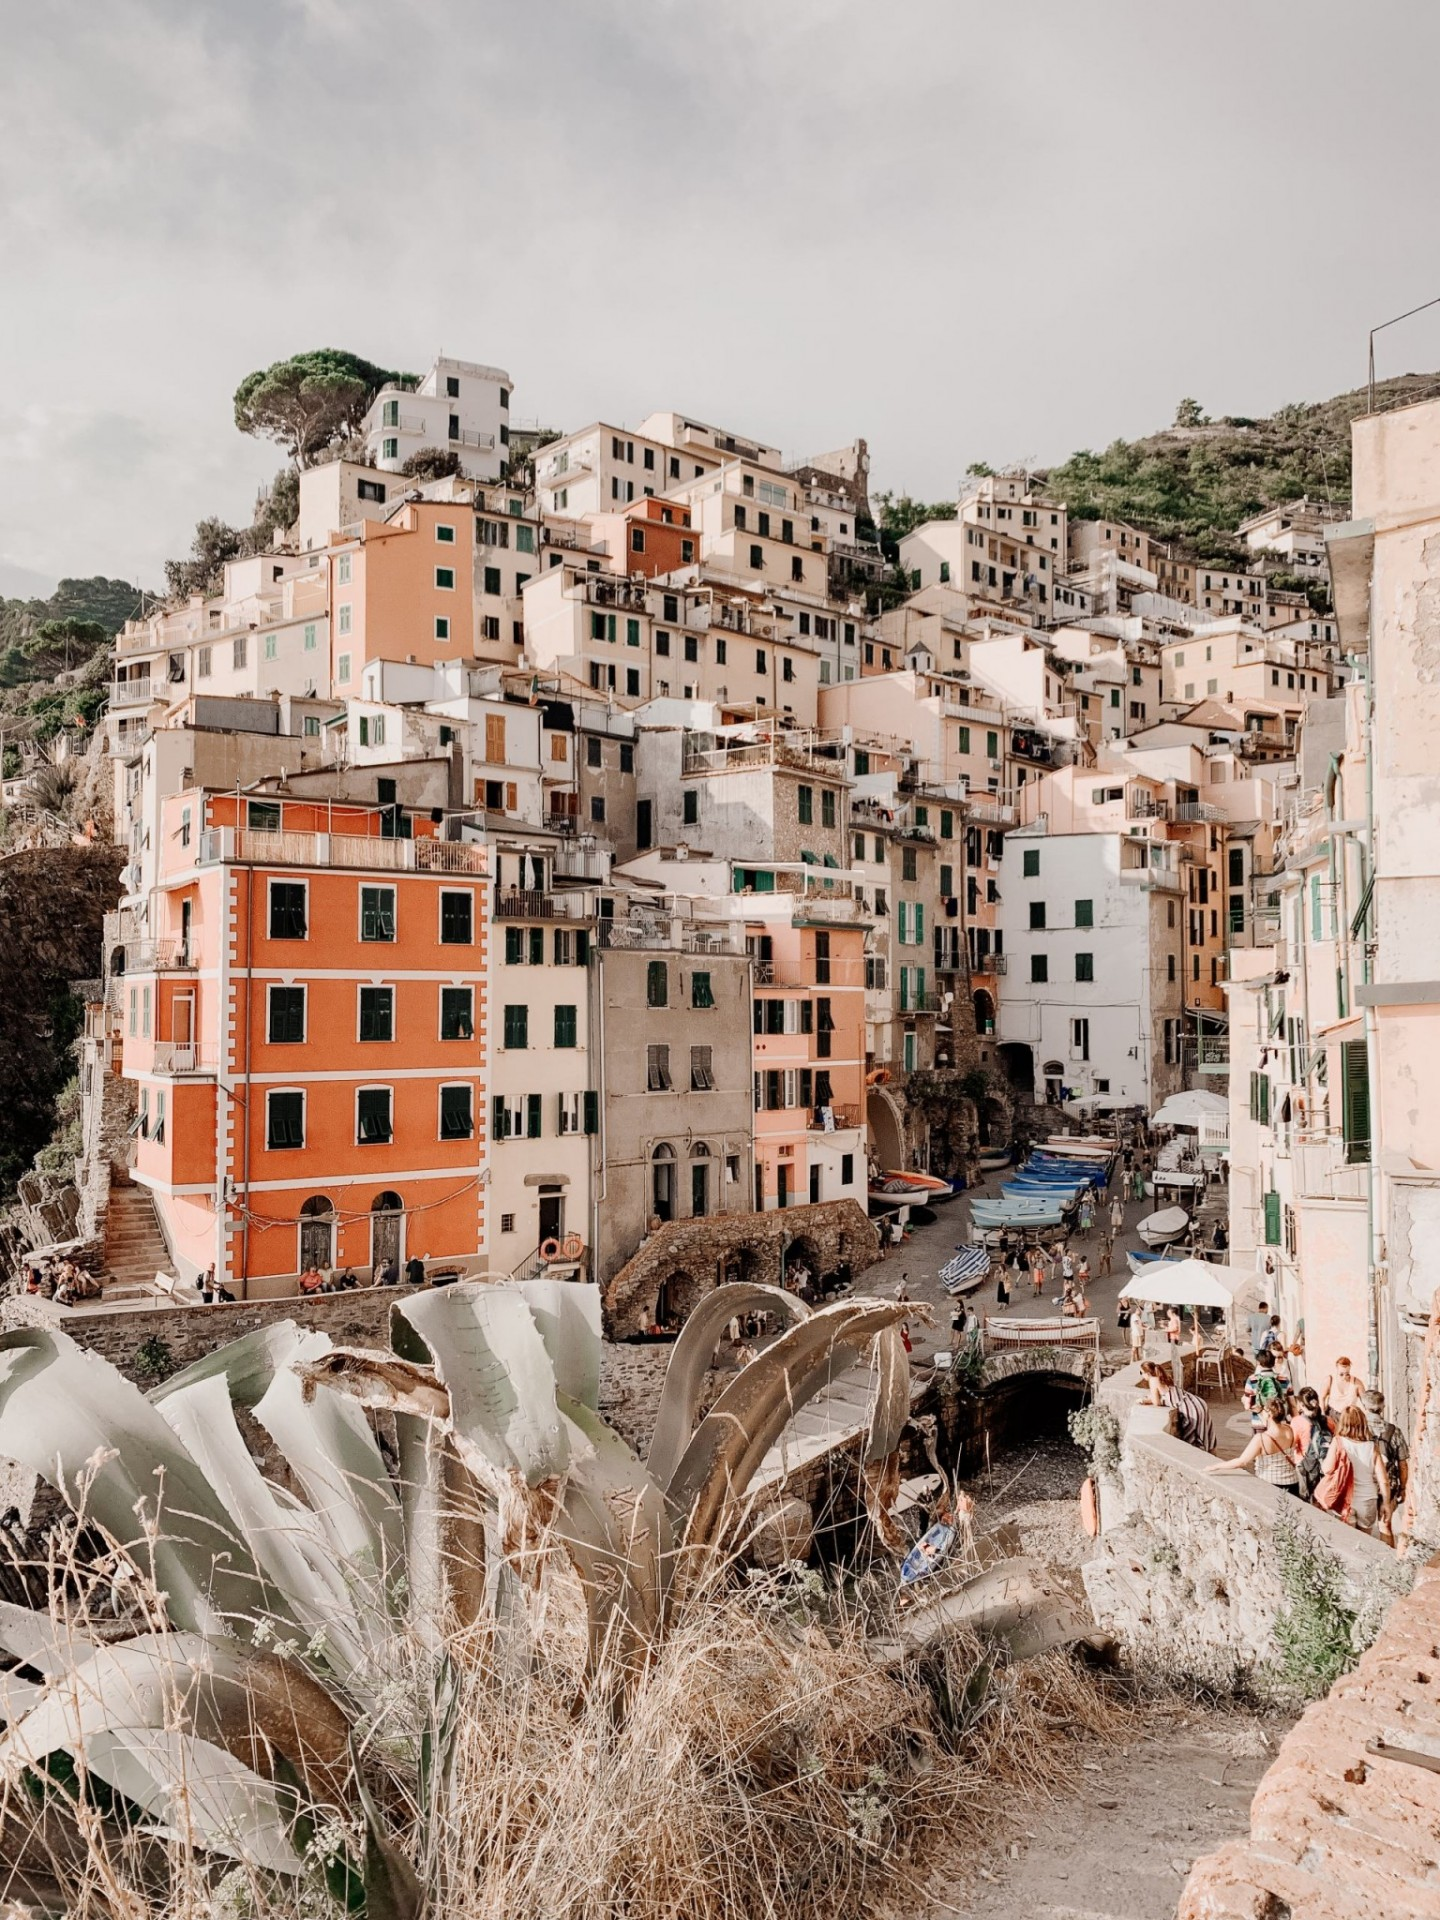 Lifestyle blogger Mollie Moore shares a Cinque Terre travel guide | Travel Guide: Things to do in Cinque Terre, Italy by popular London travel blogger, Mollie Moore: image of colorful buildings in Cinque Terre, Italy.